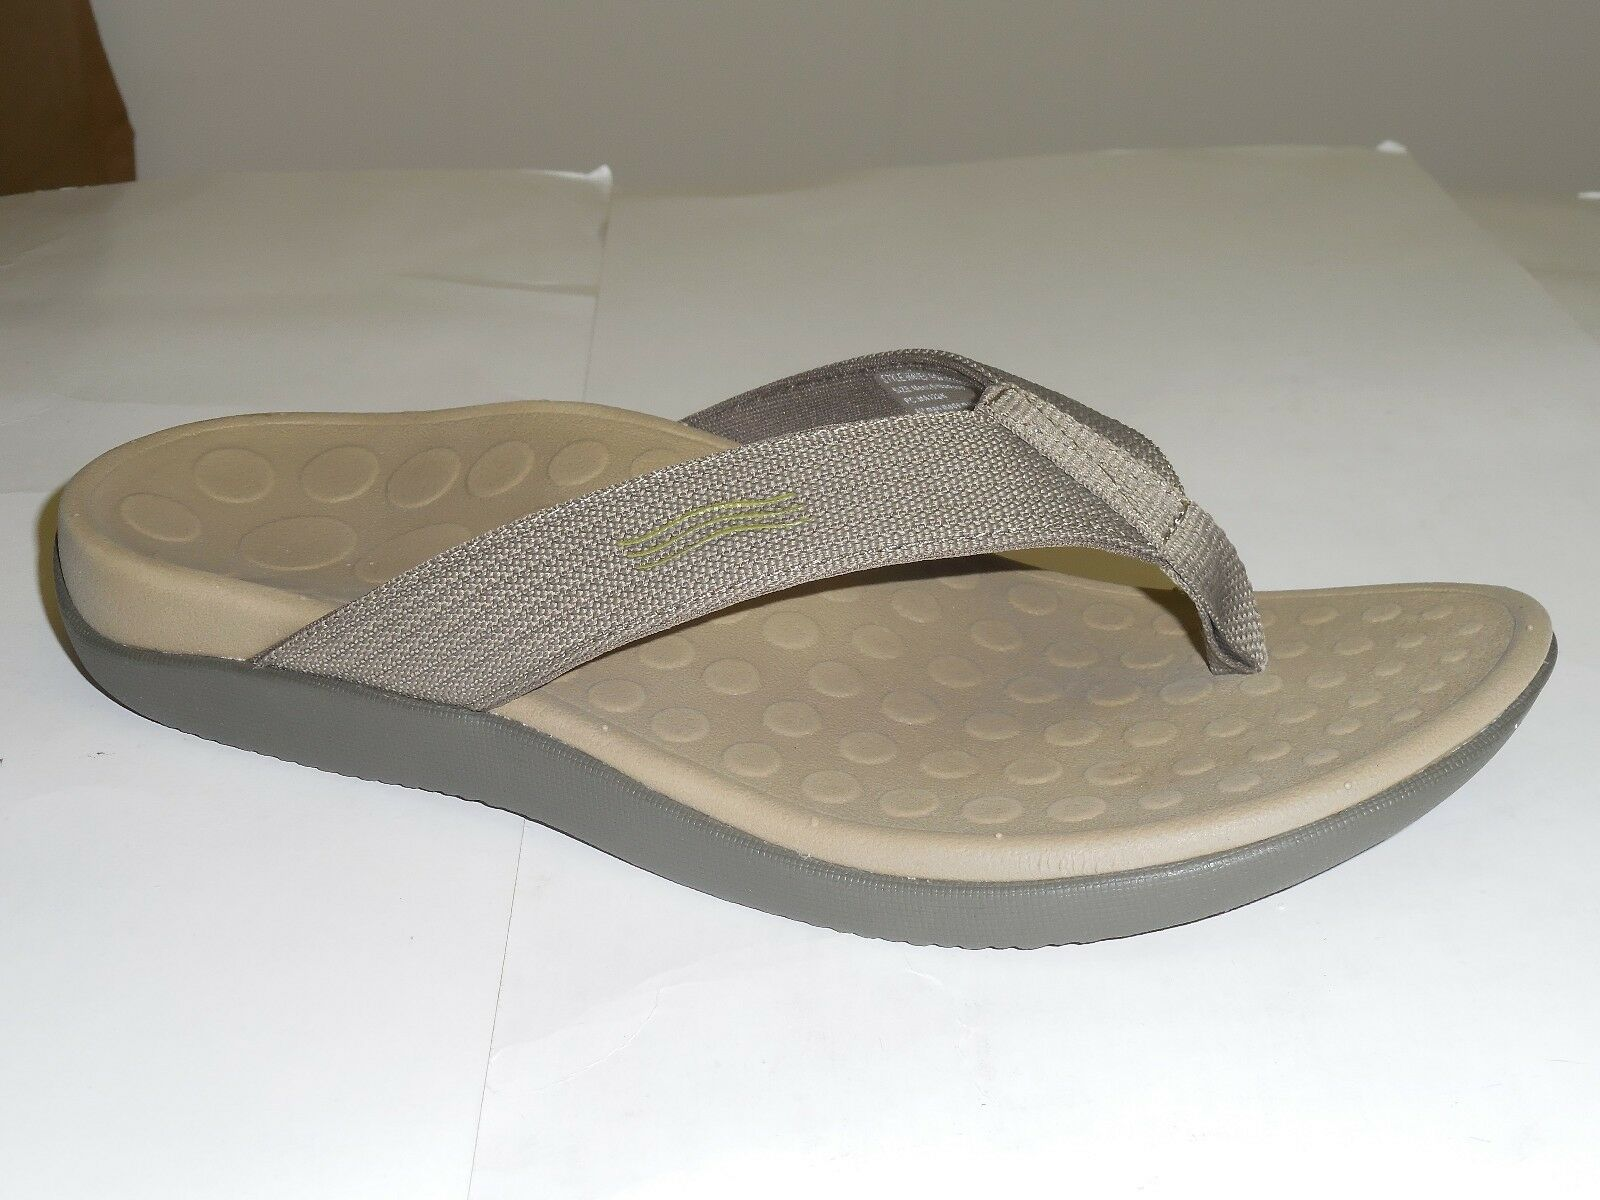 Scarpe casual da uomo The Original Orthaheel Unisex Sandals With Orthaheel Technology Wave ll Khaki